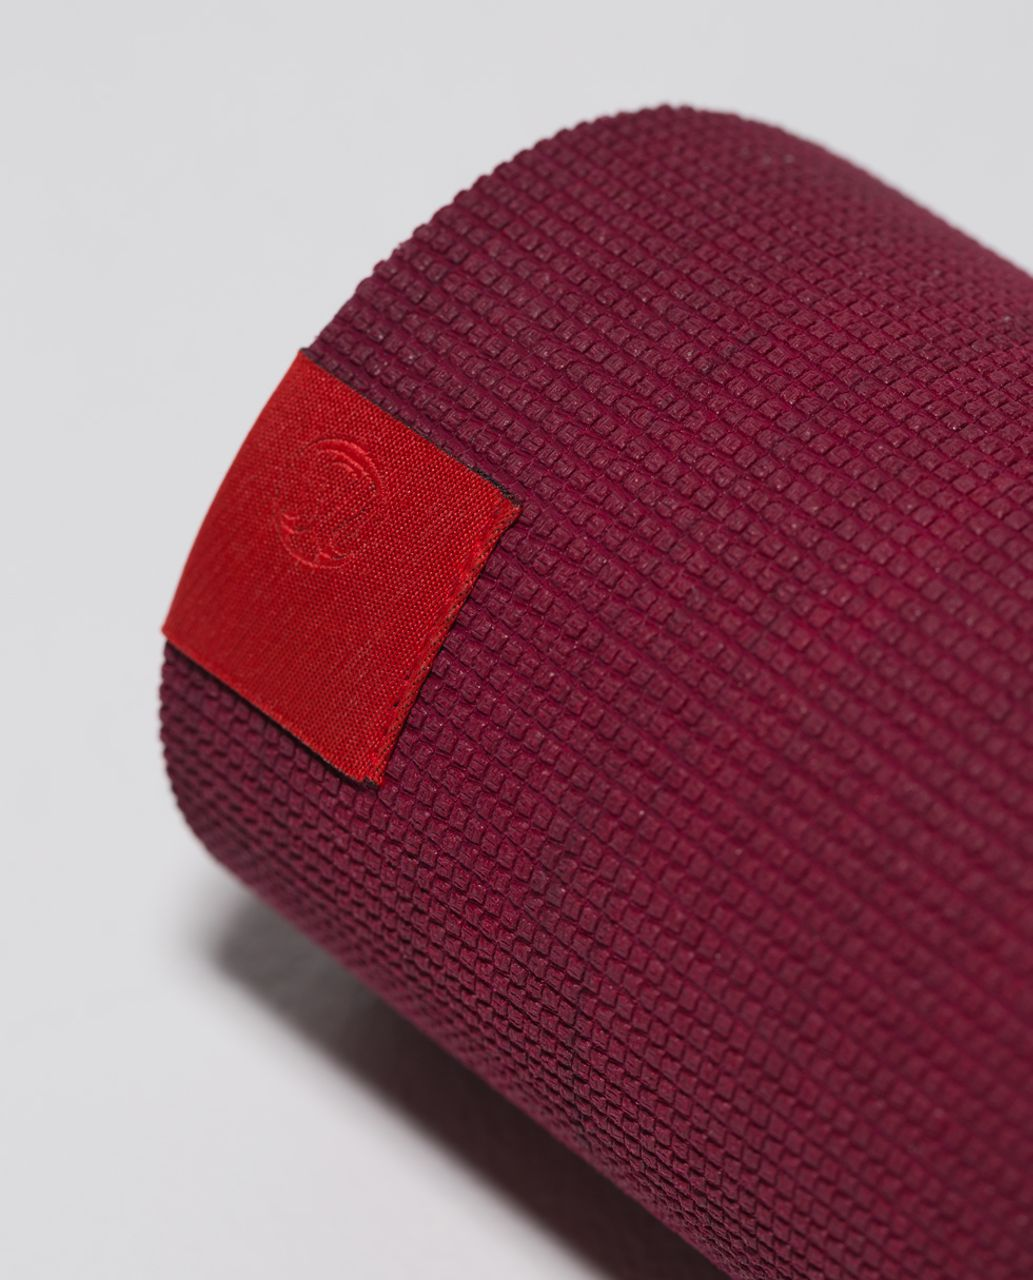 Lululemon The Pure Mat 3mm - Bumble Berry / Bordeaux Drama